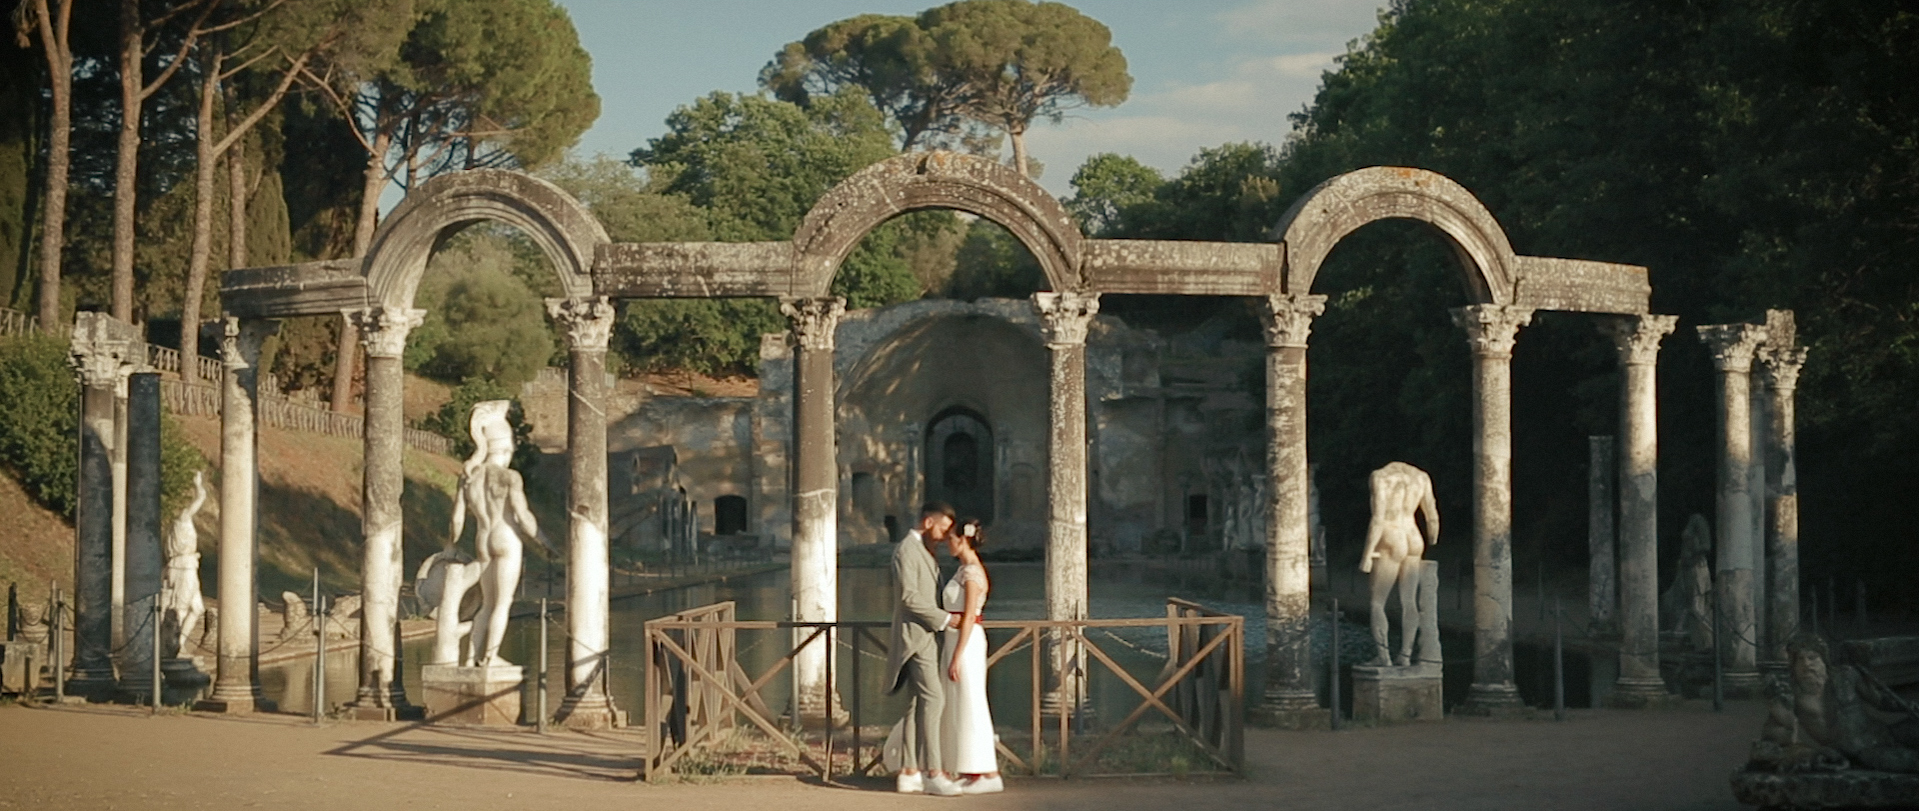 Intimate wedding video in rome 8